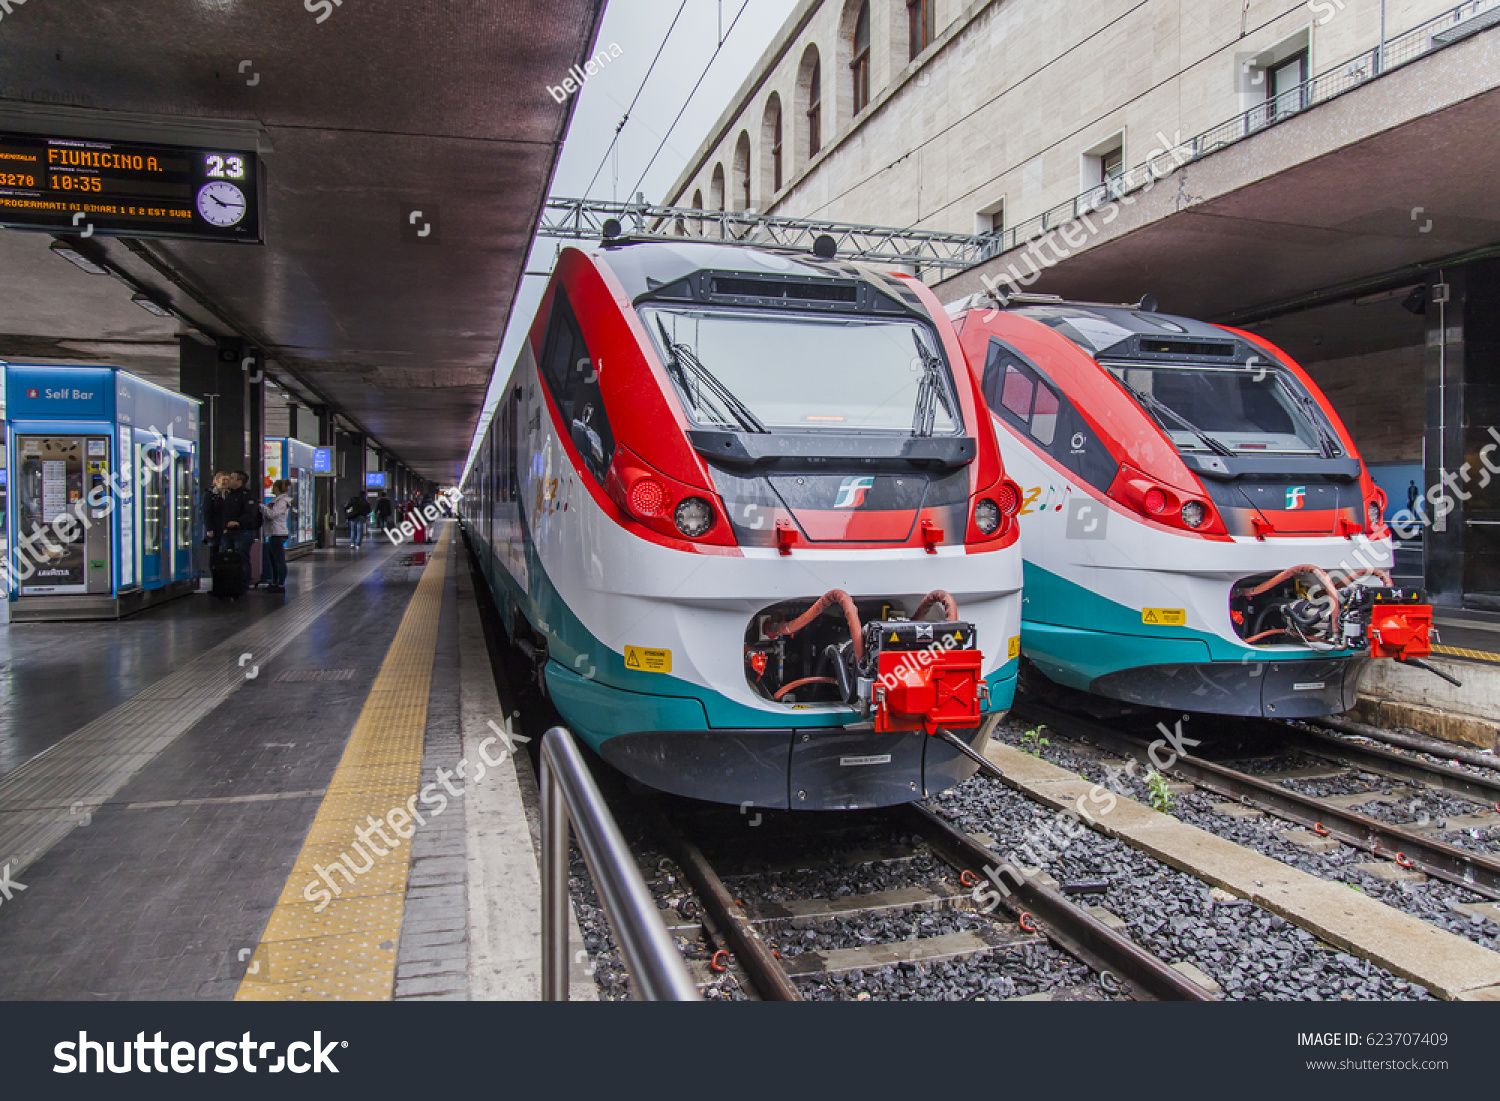 Train Moscow-Rome: how to get to the capital of Italy